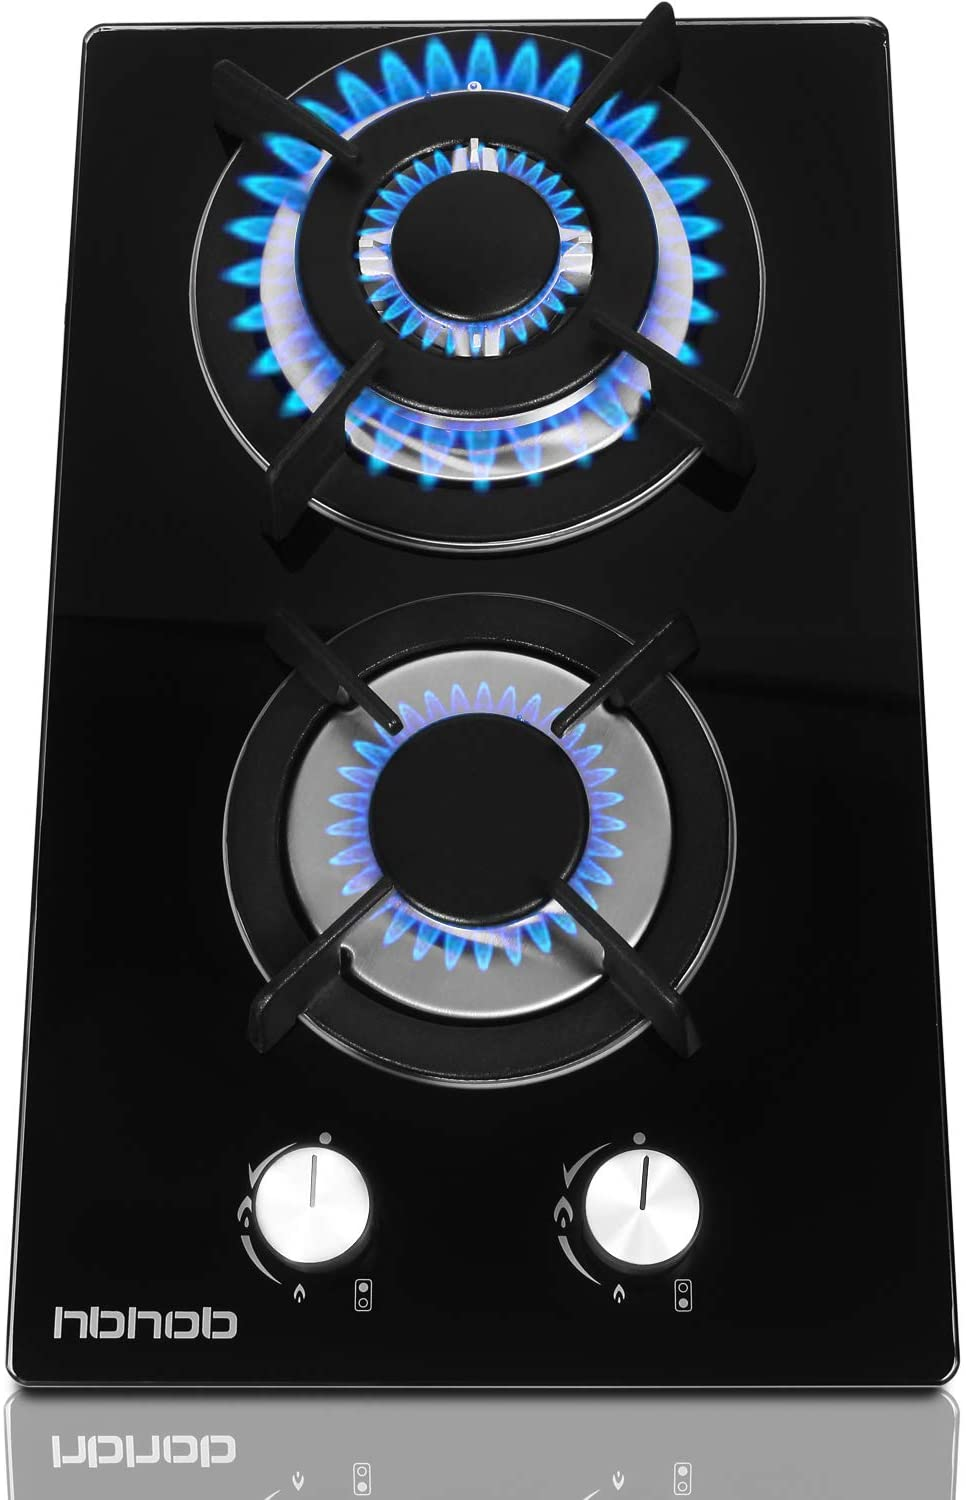 HBHOB 12-inches Gas Stove with Thermocouple Protection